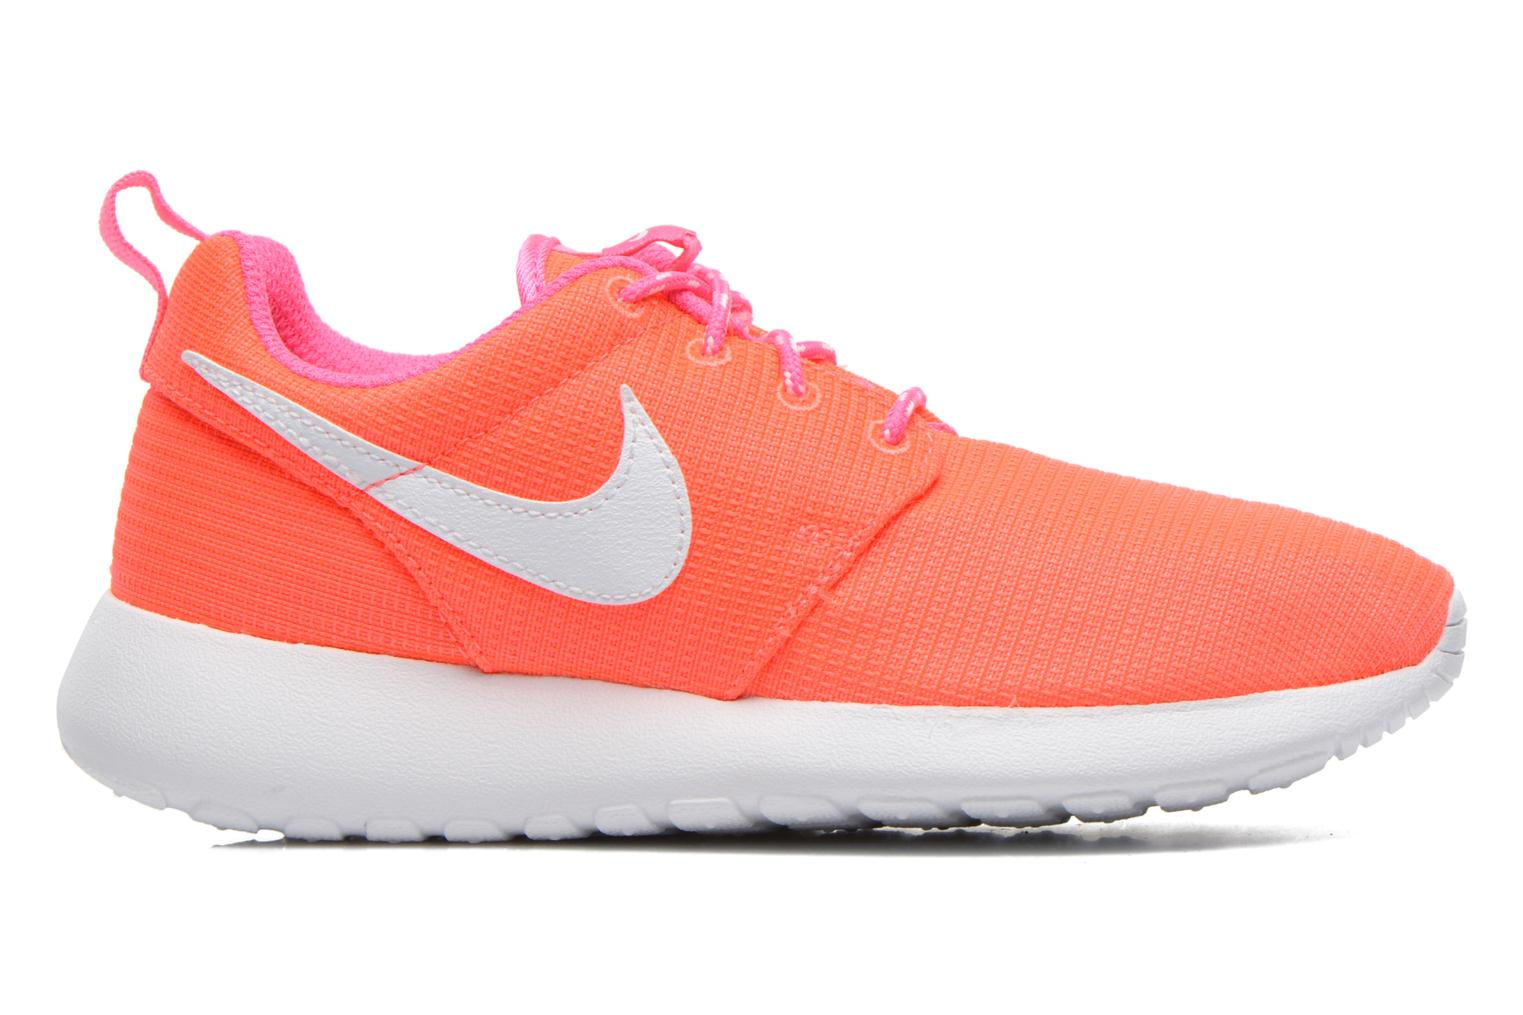 Wolf Grey/Hypr Pink-Cl Gry-Wht Nike NIKE ROSHE ONE (GS) (Gris)